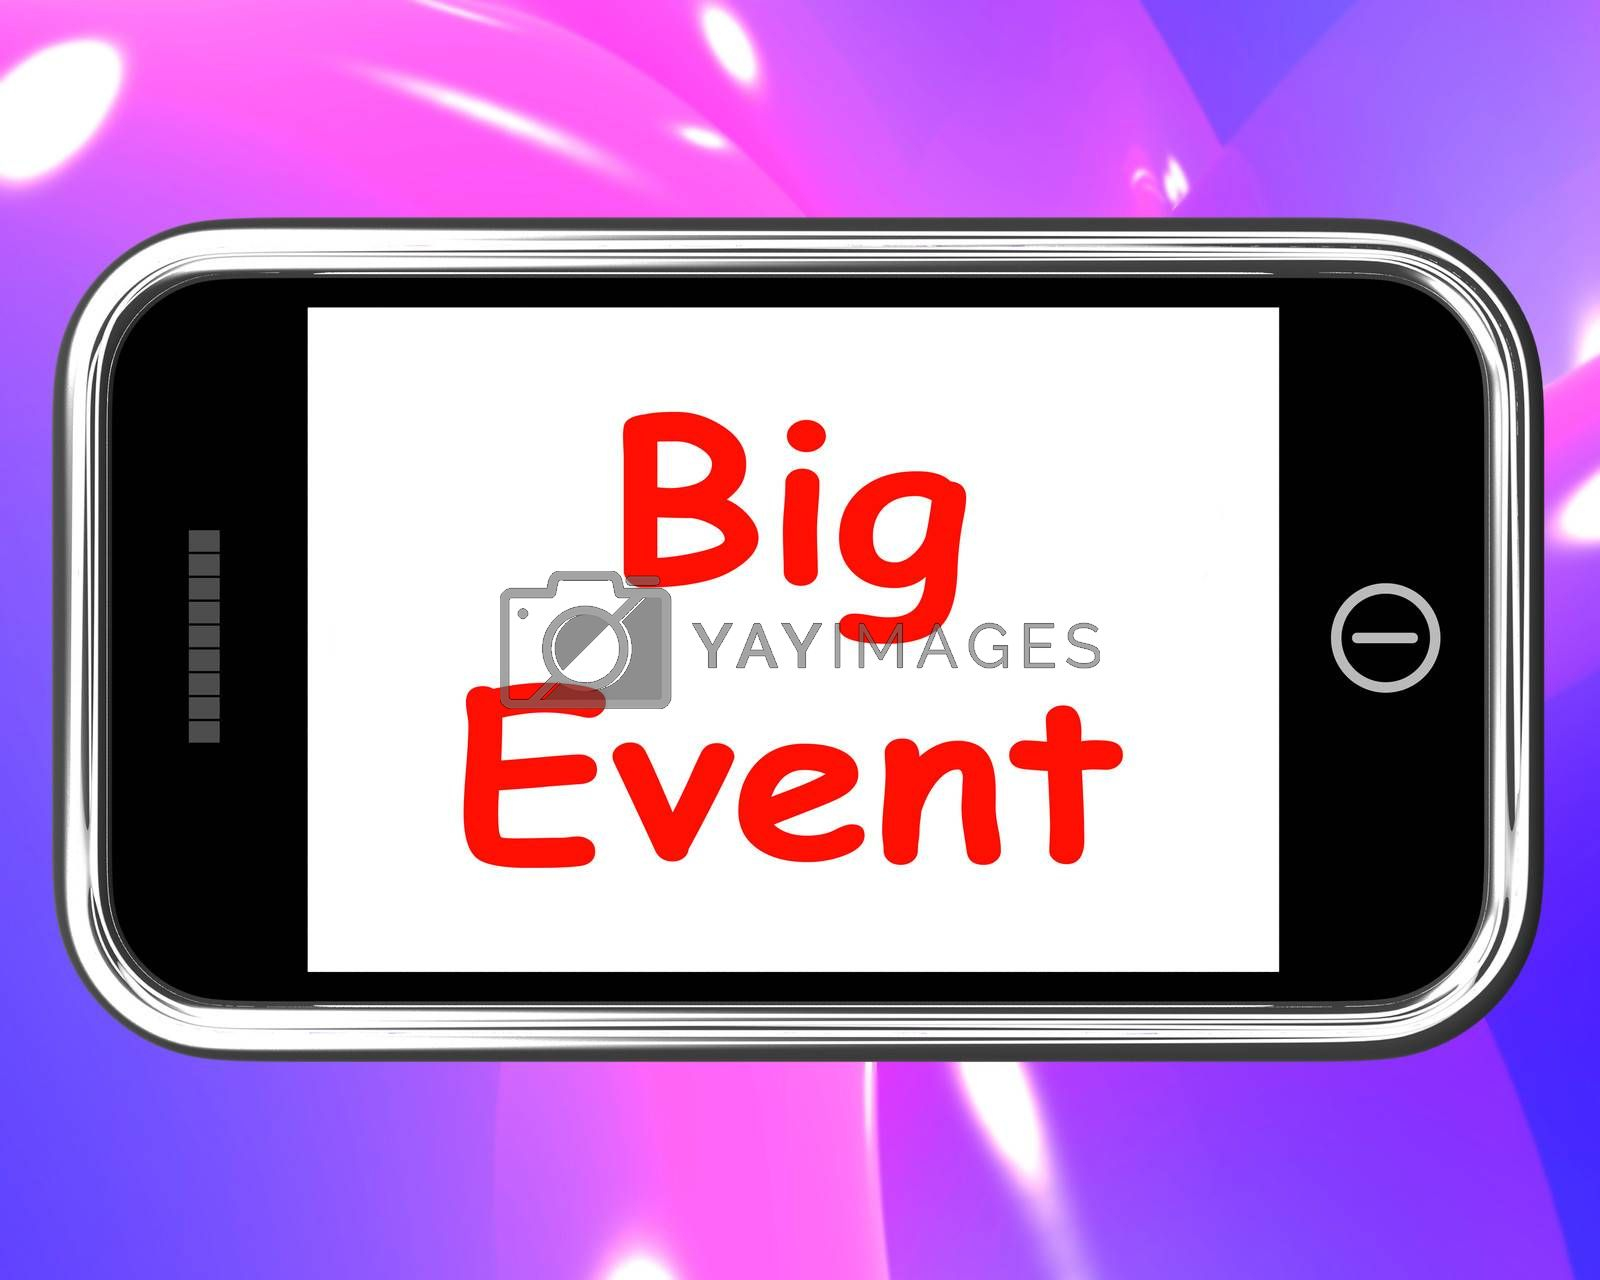 Big Event On Phone Showing Celebration Occasion Festival And Performance